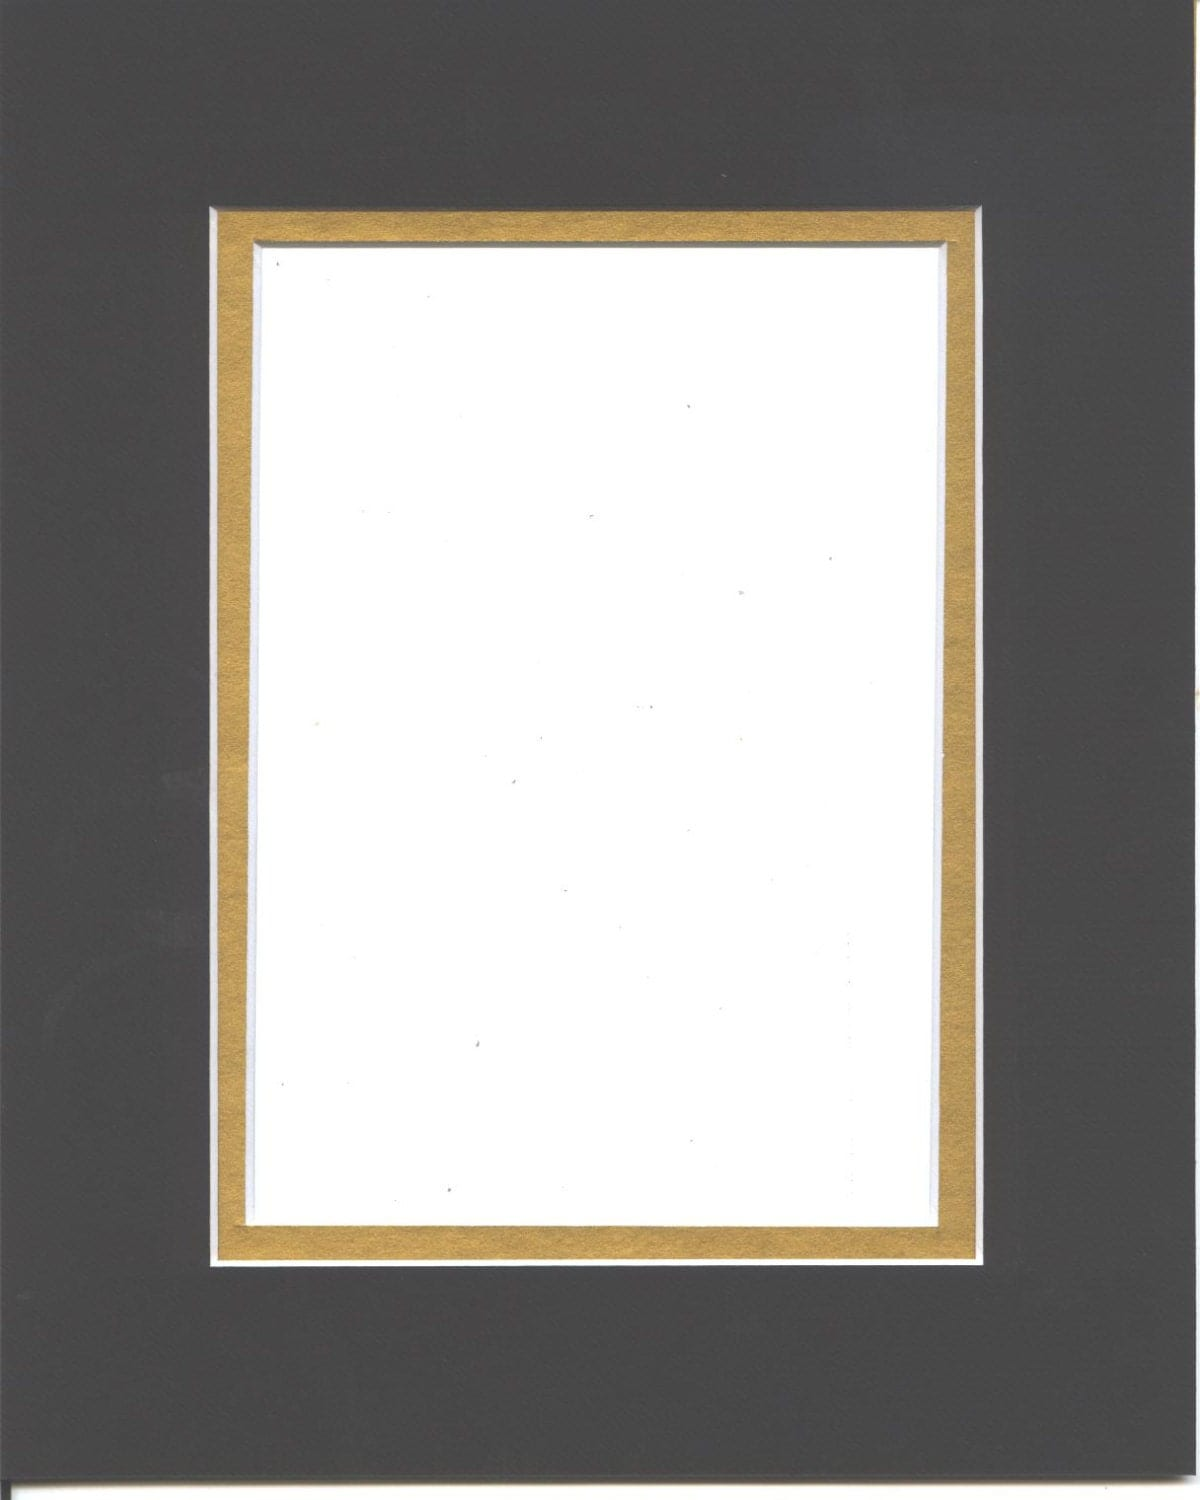 22x28 Black Amp Gold Double Picture Mat With White Core Bevel